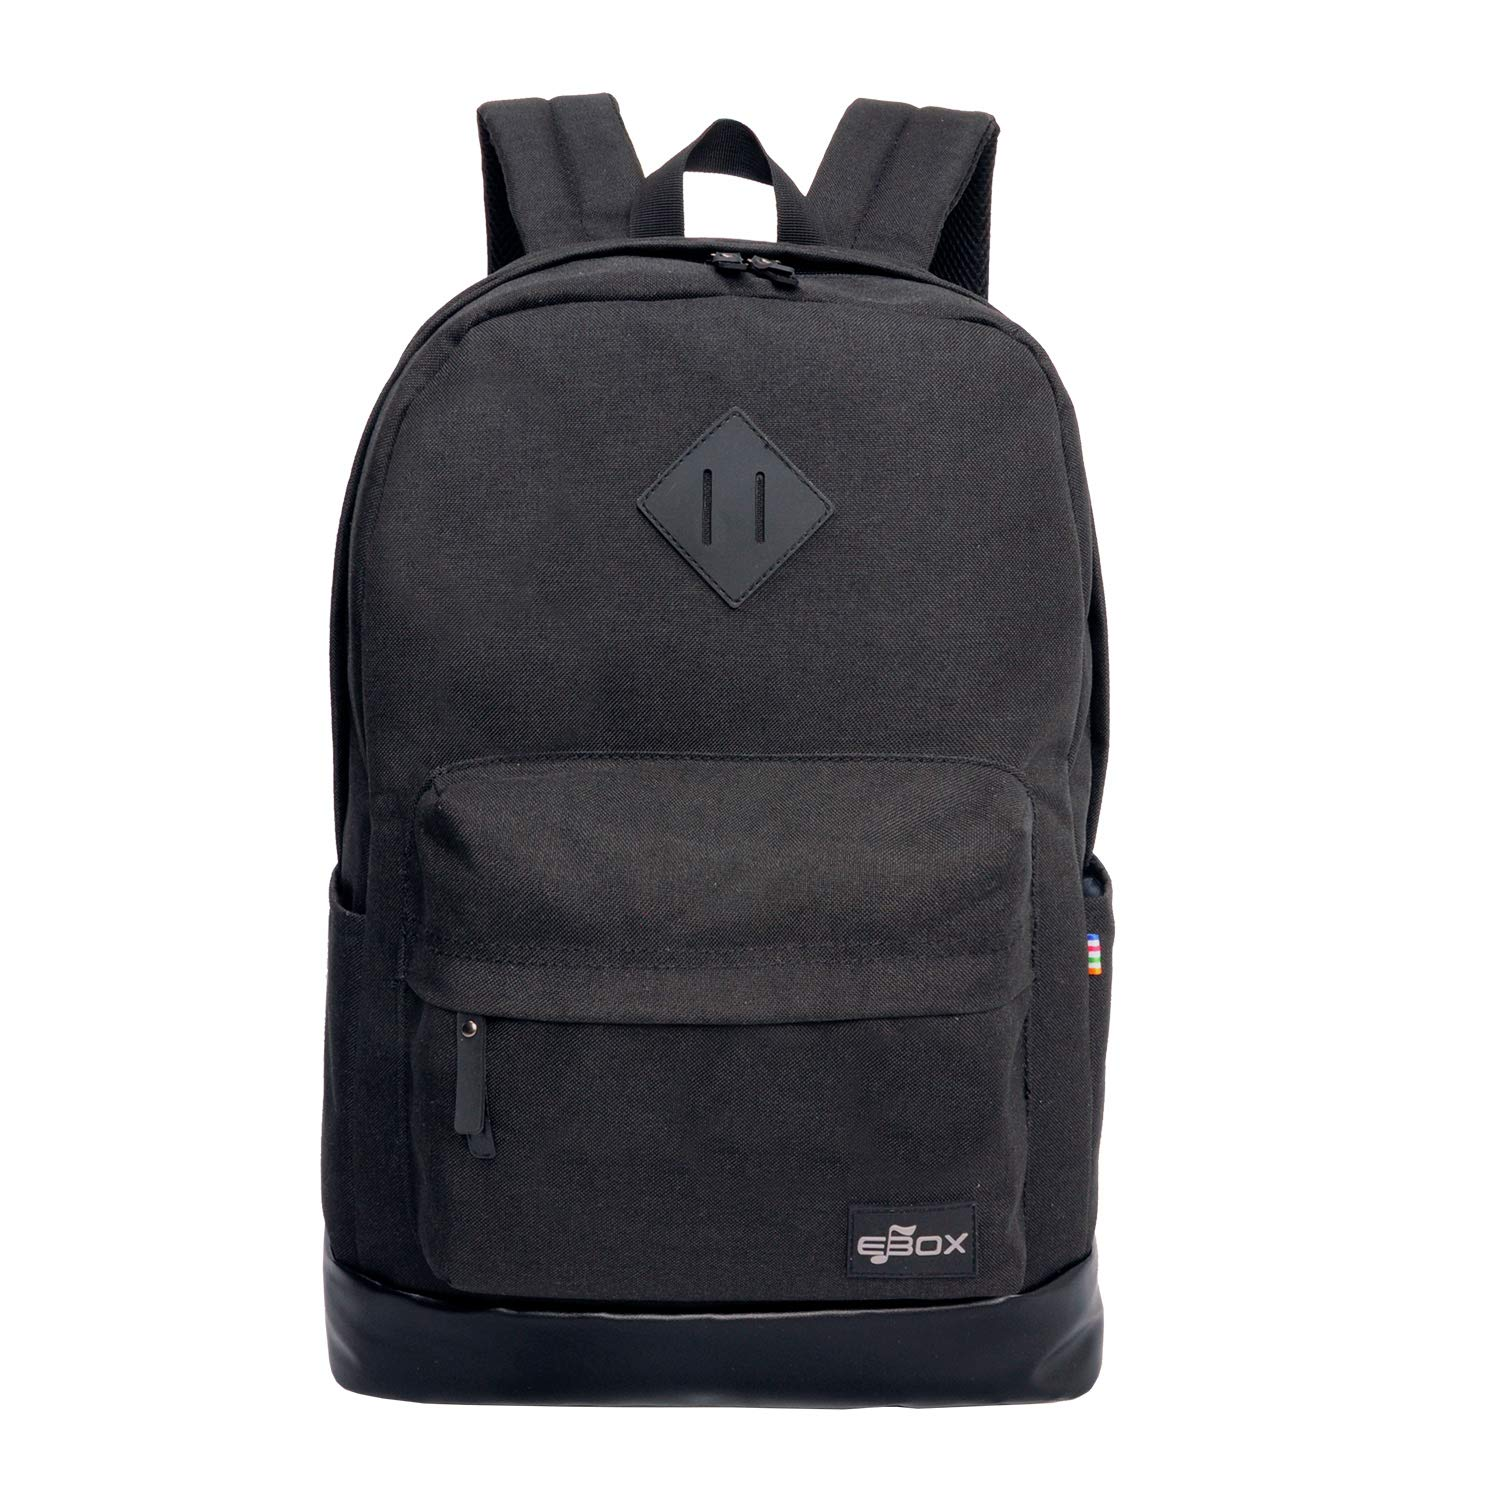 565b0f26373f2e EBOX 2-Layer School Backpack Laptop Rucksack Fits 14 15 15.6 Inch Travel  Business Daypack Casual College Backpack Unisex Gym Bag Water-Resistant  Sports ...